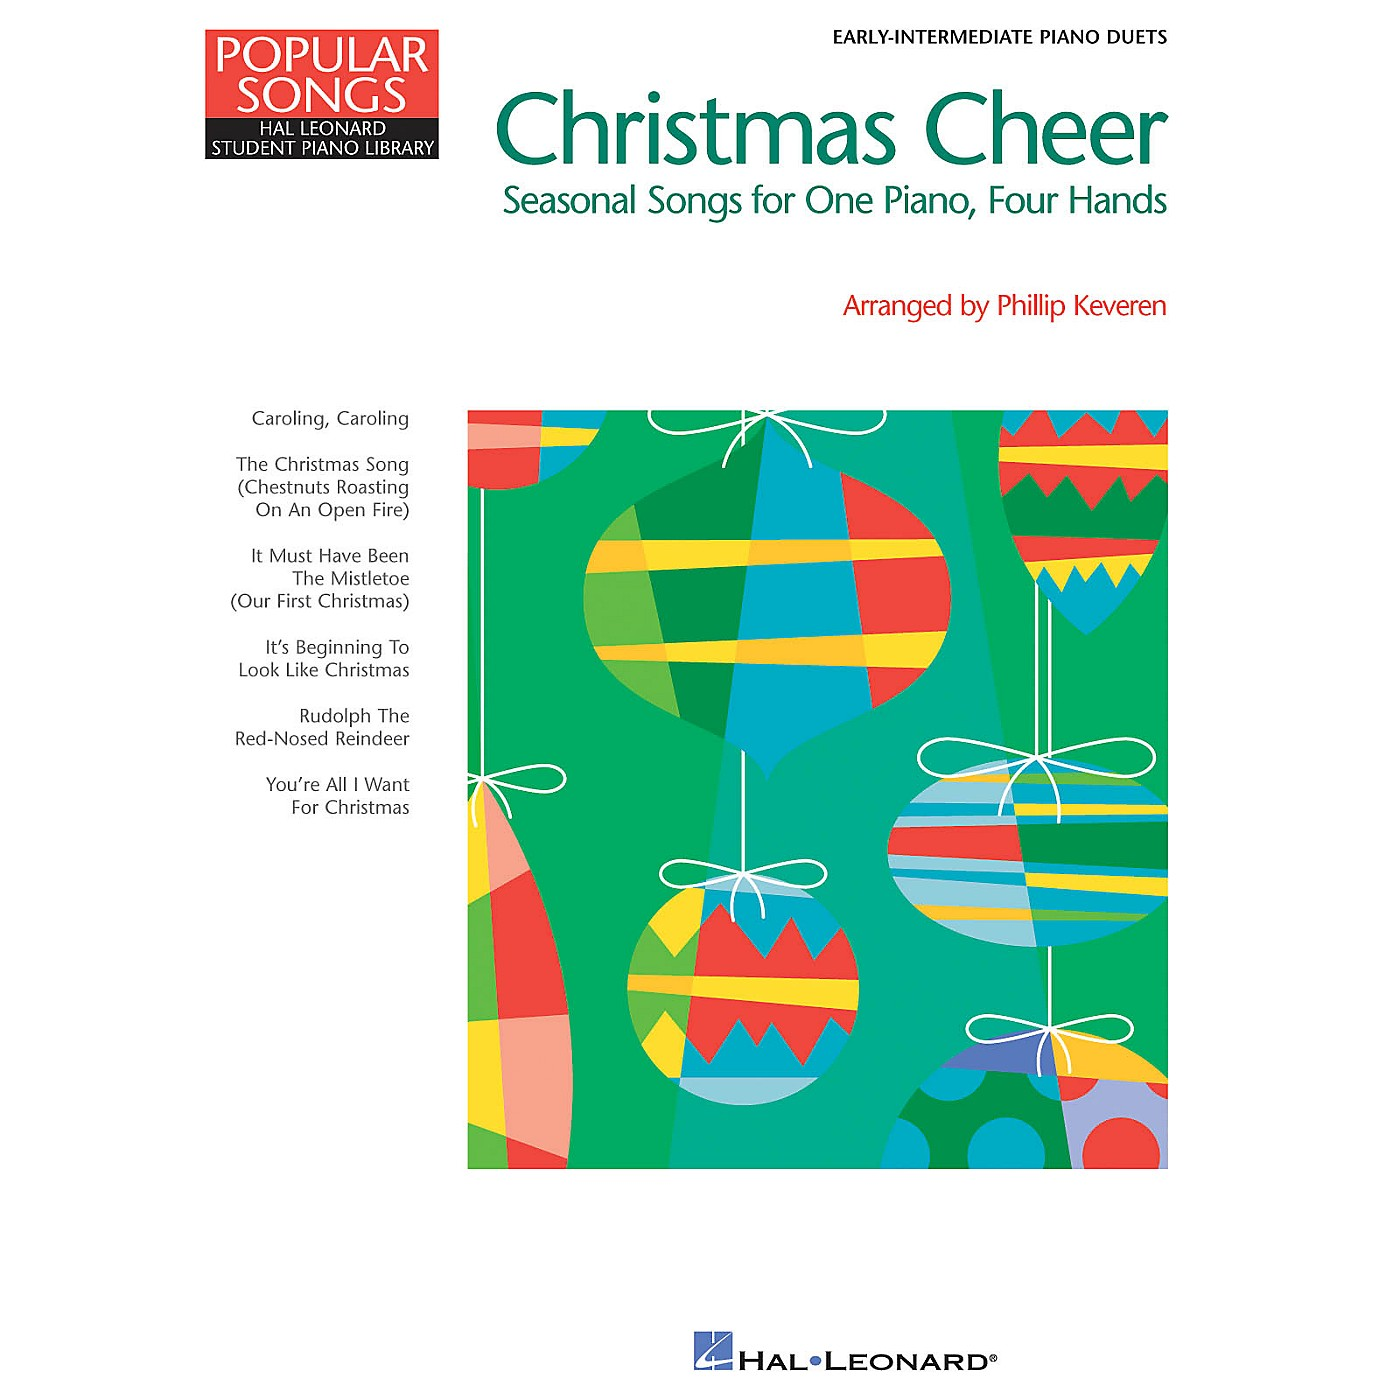 Hal Leonard Christmas Cheer (Popular Songs Series 1 Piano, 4 Hands) Piano Library Series Book (Level Early Inter) thumbnail